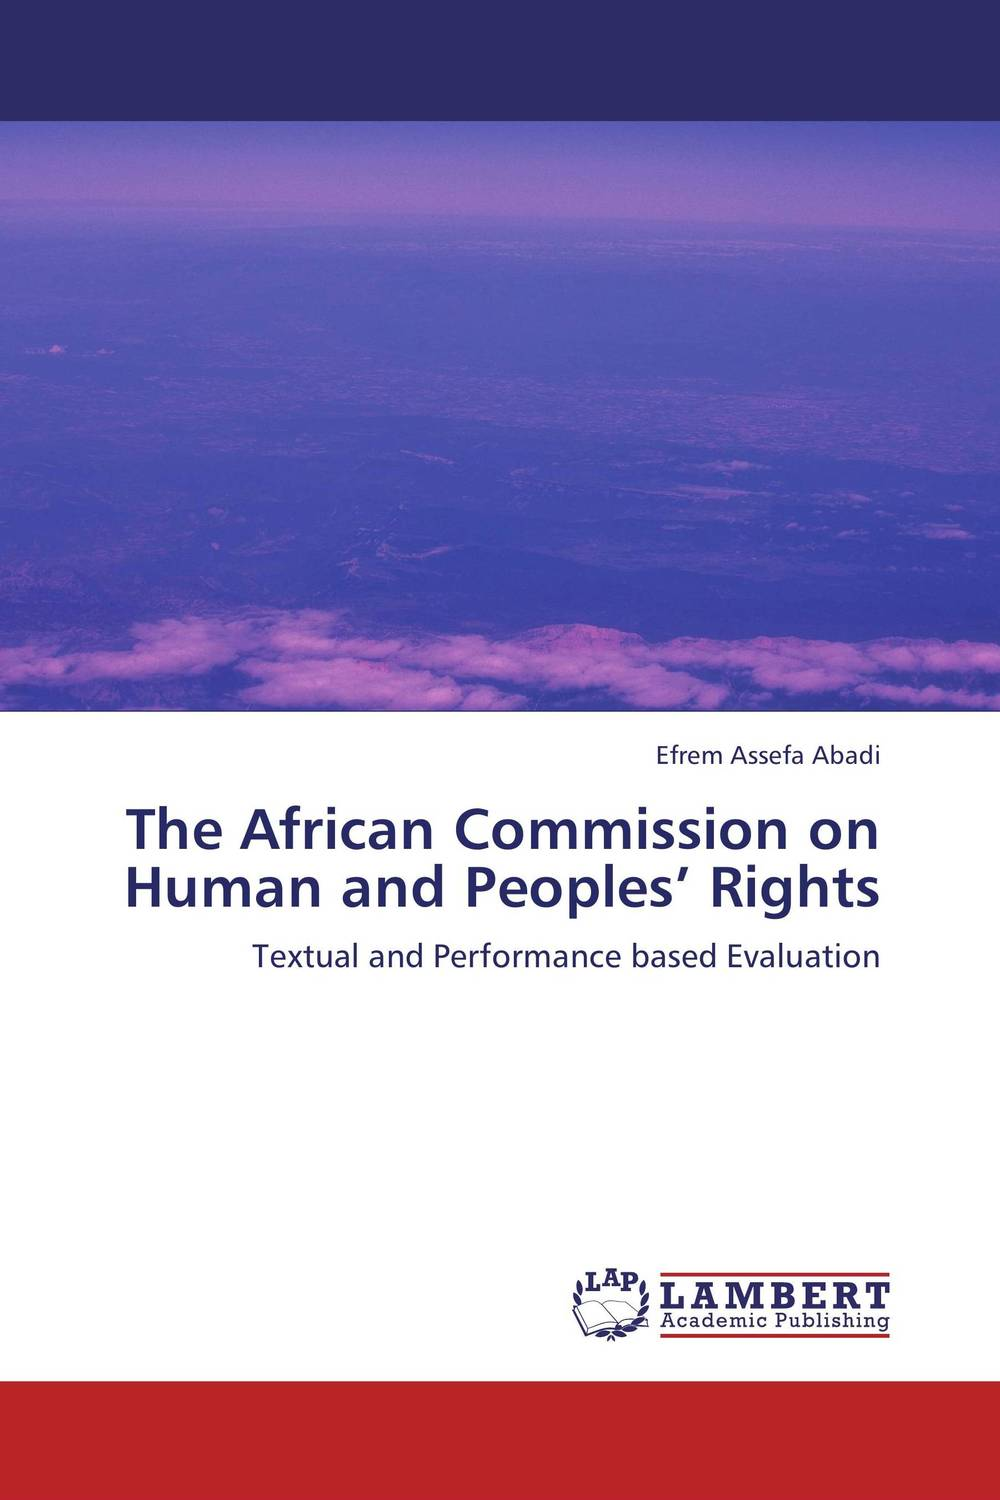 The African Commission on Human and Peoples' Rights the role of evaluation as a mechanism for advancing principal practice